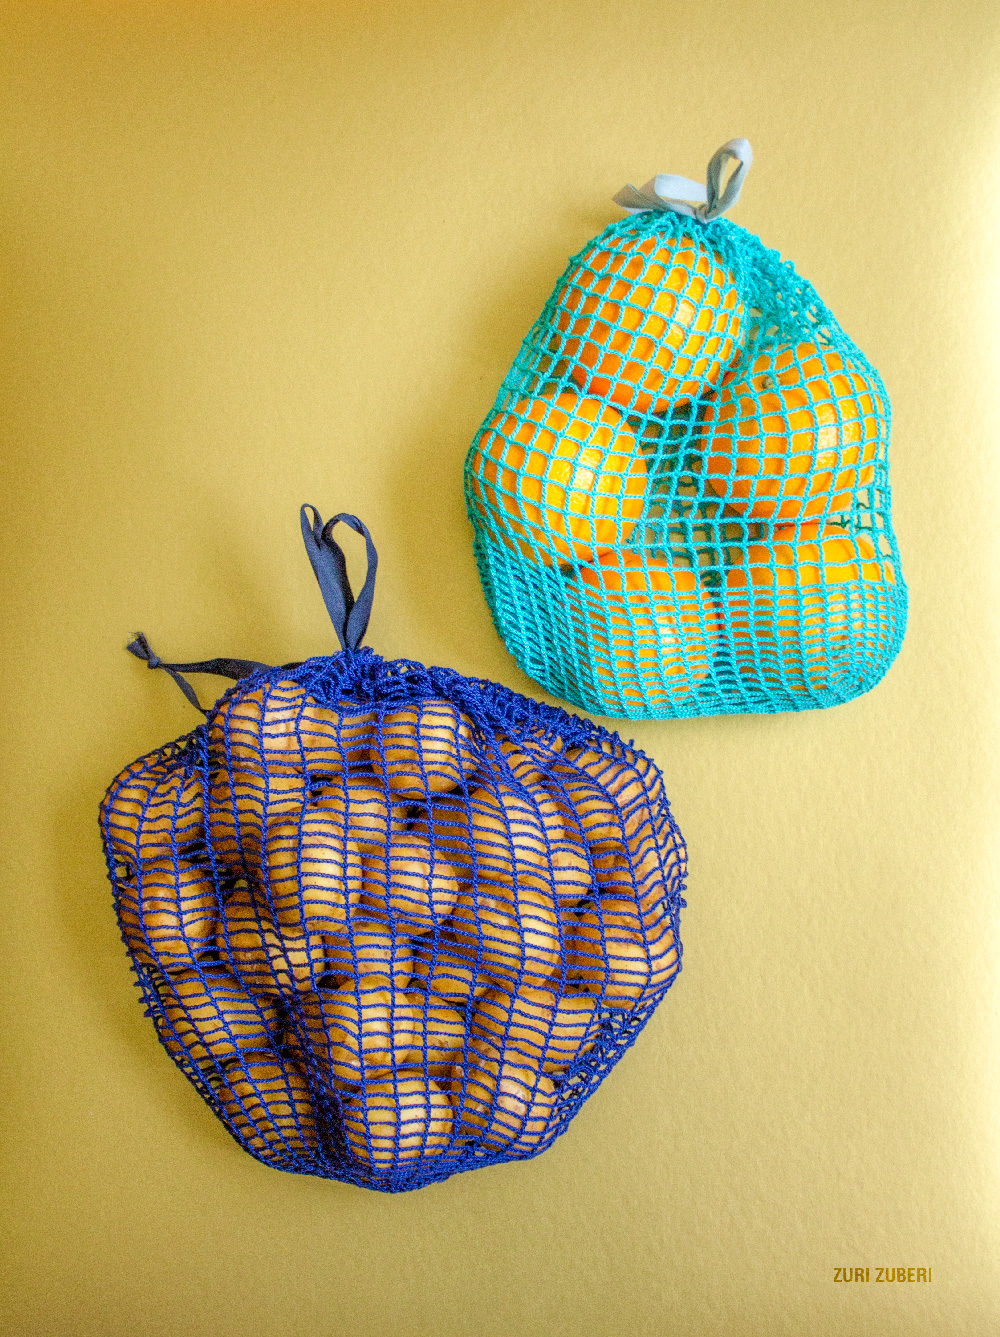 Crocheted produce bags